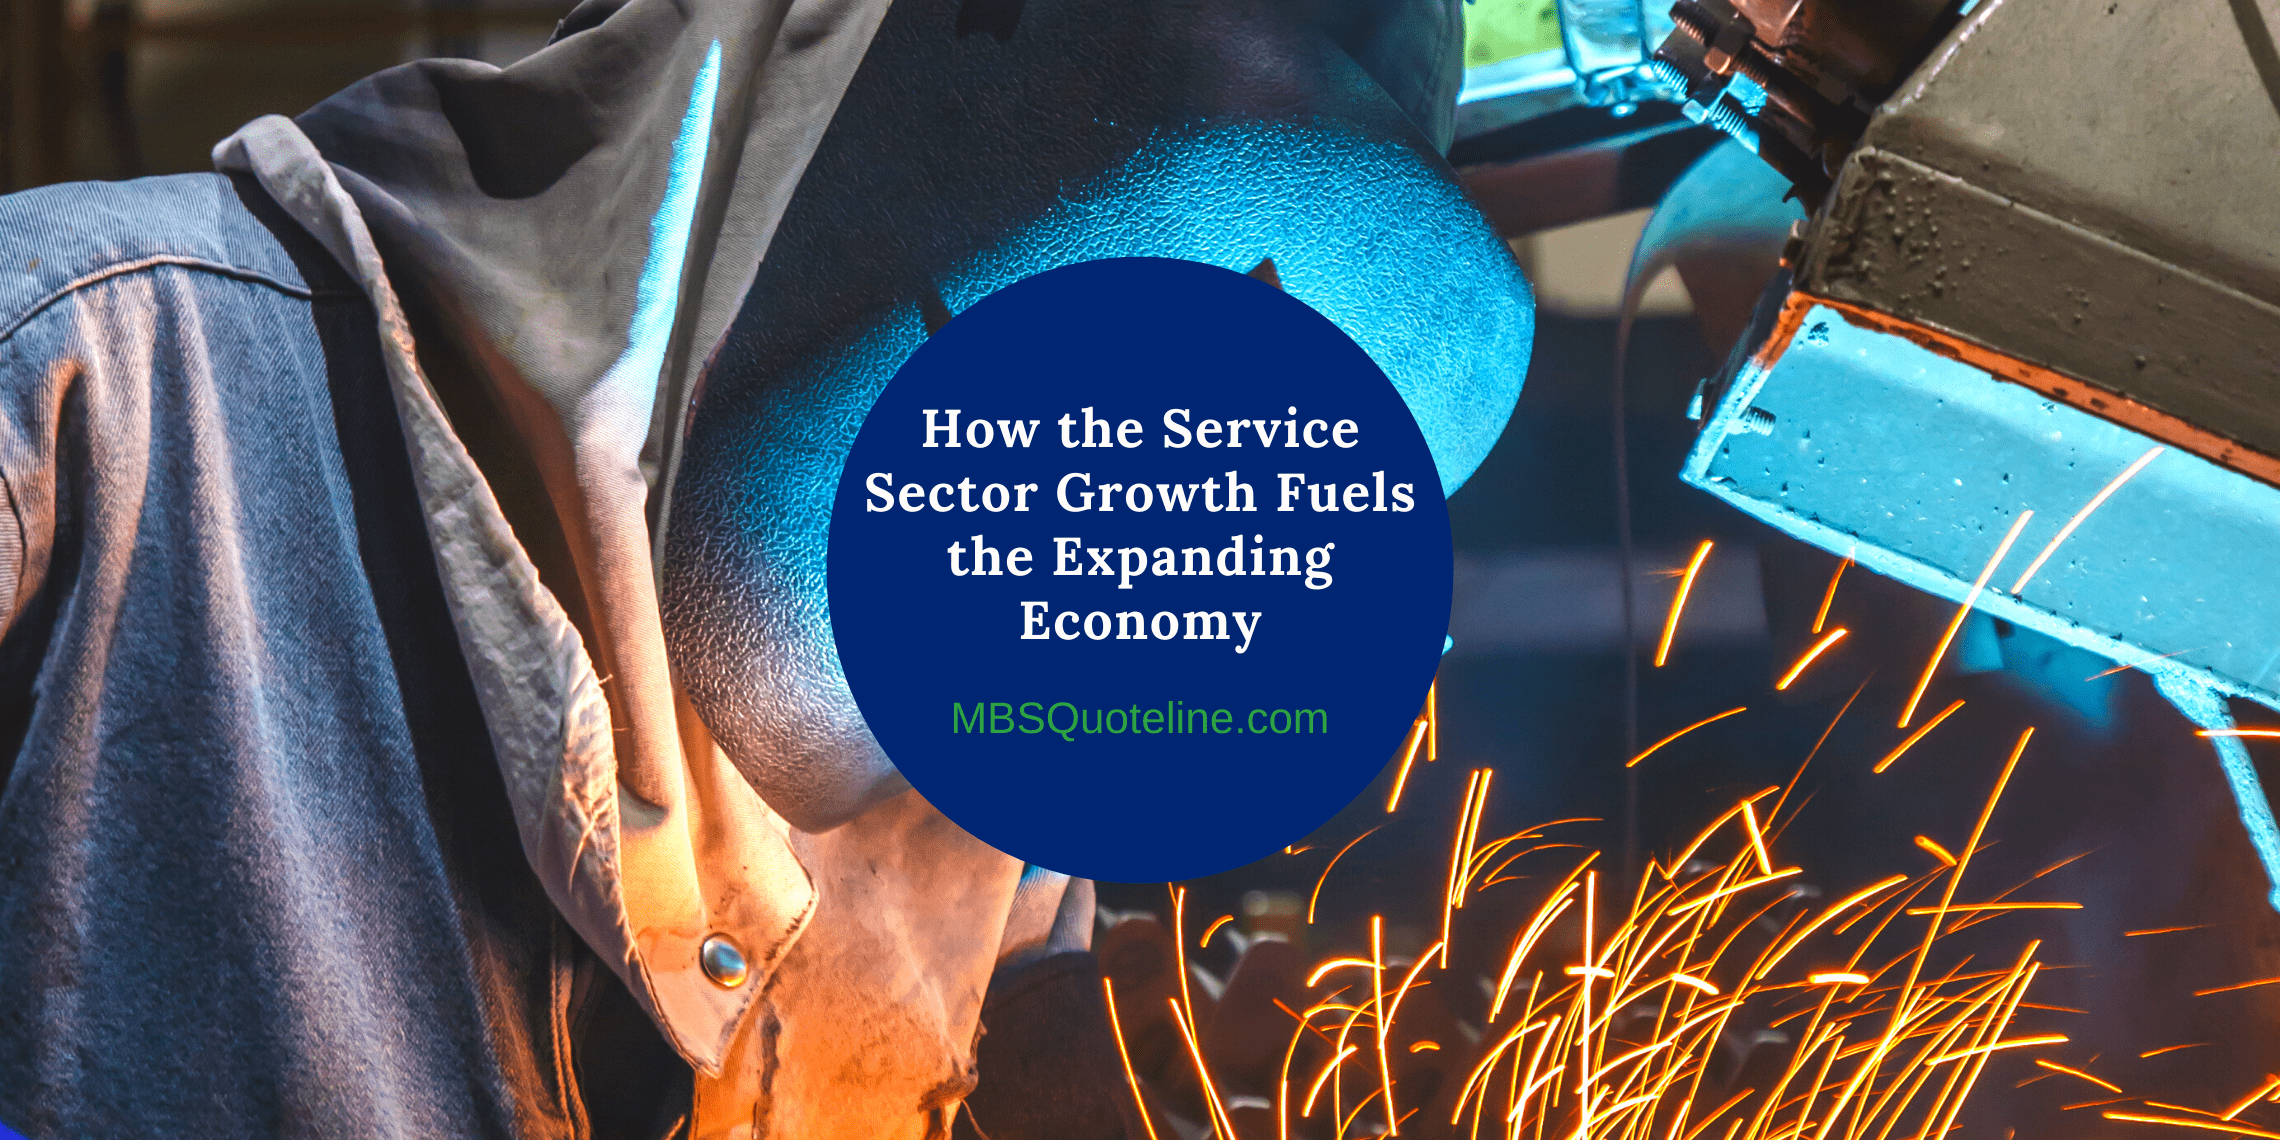 service sector growth fuels expanding economy mortgagetime mbsquoteline featured